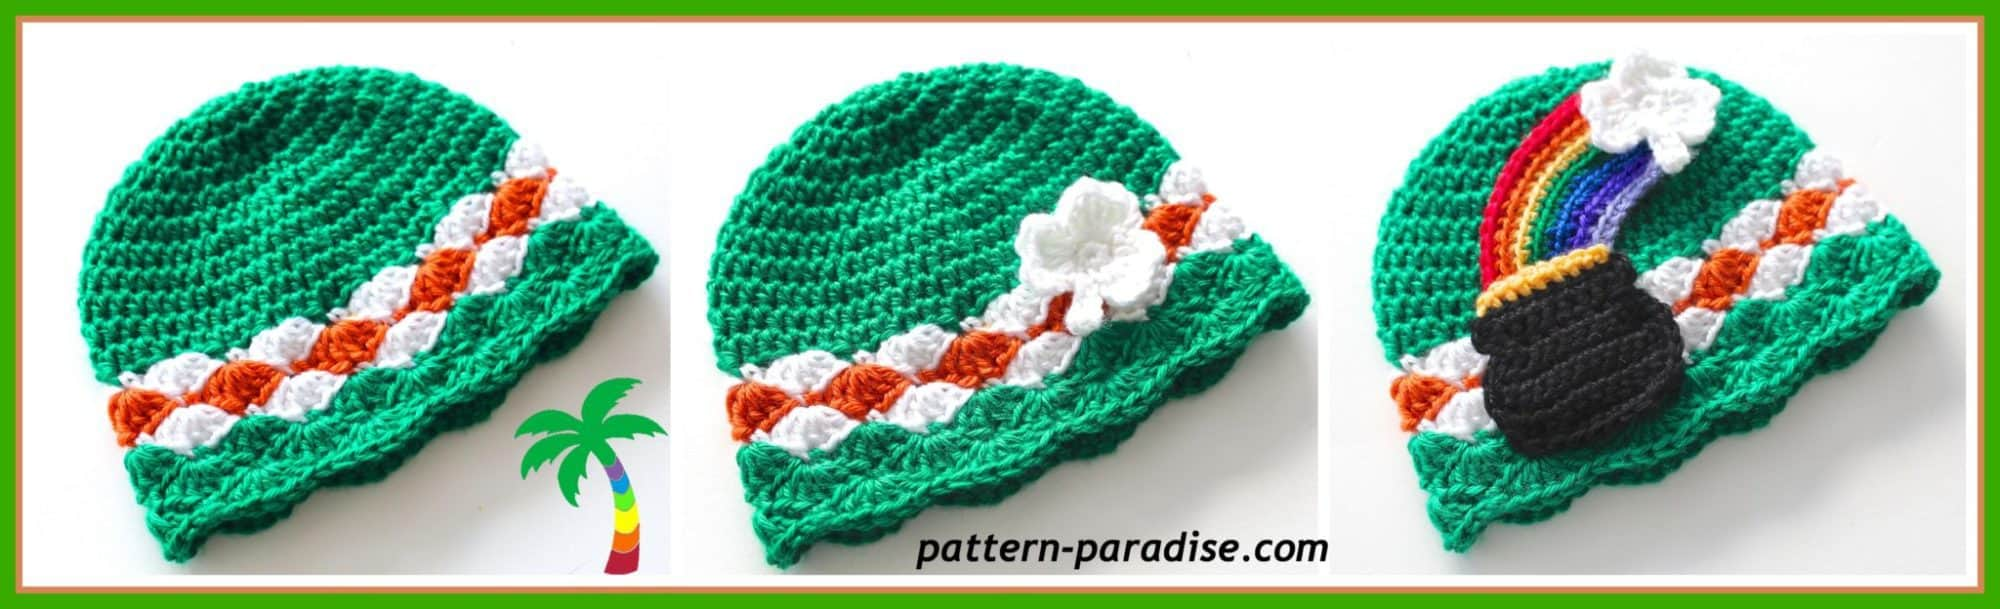 St Patrick's Day hat with pot of gold appliqué.